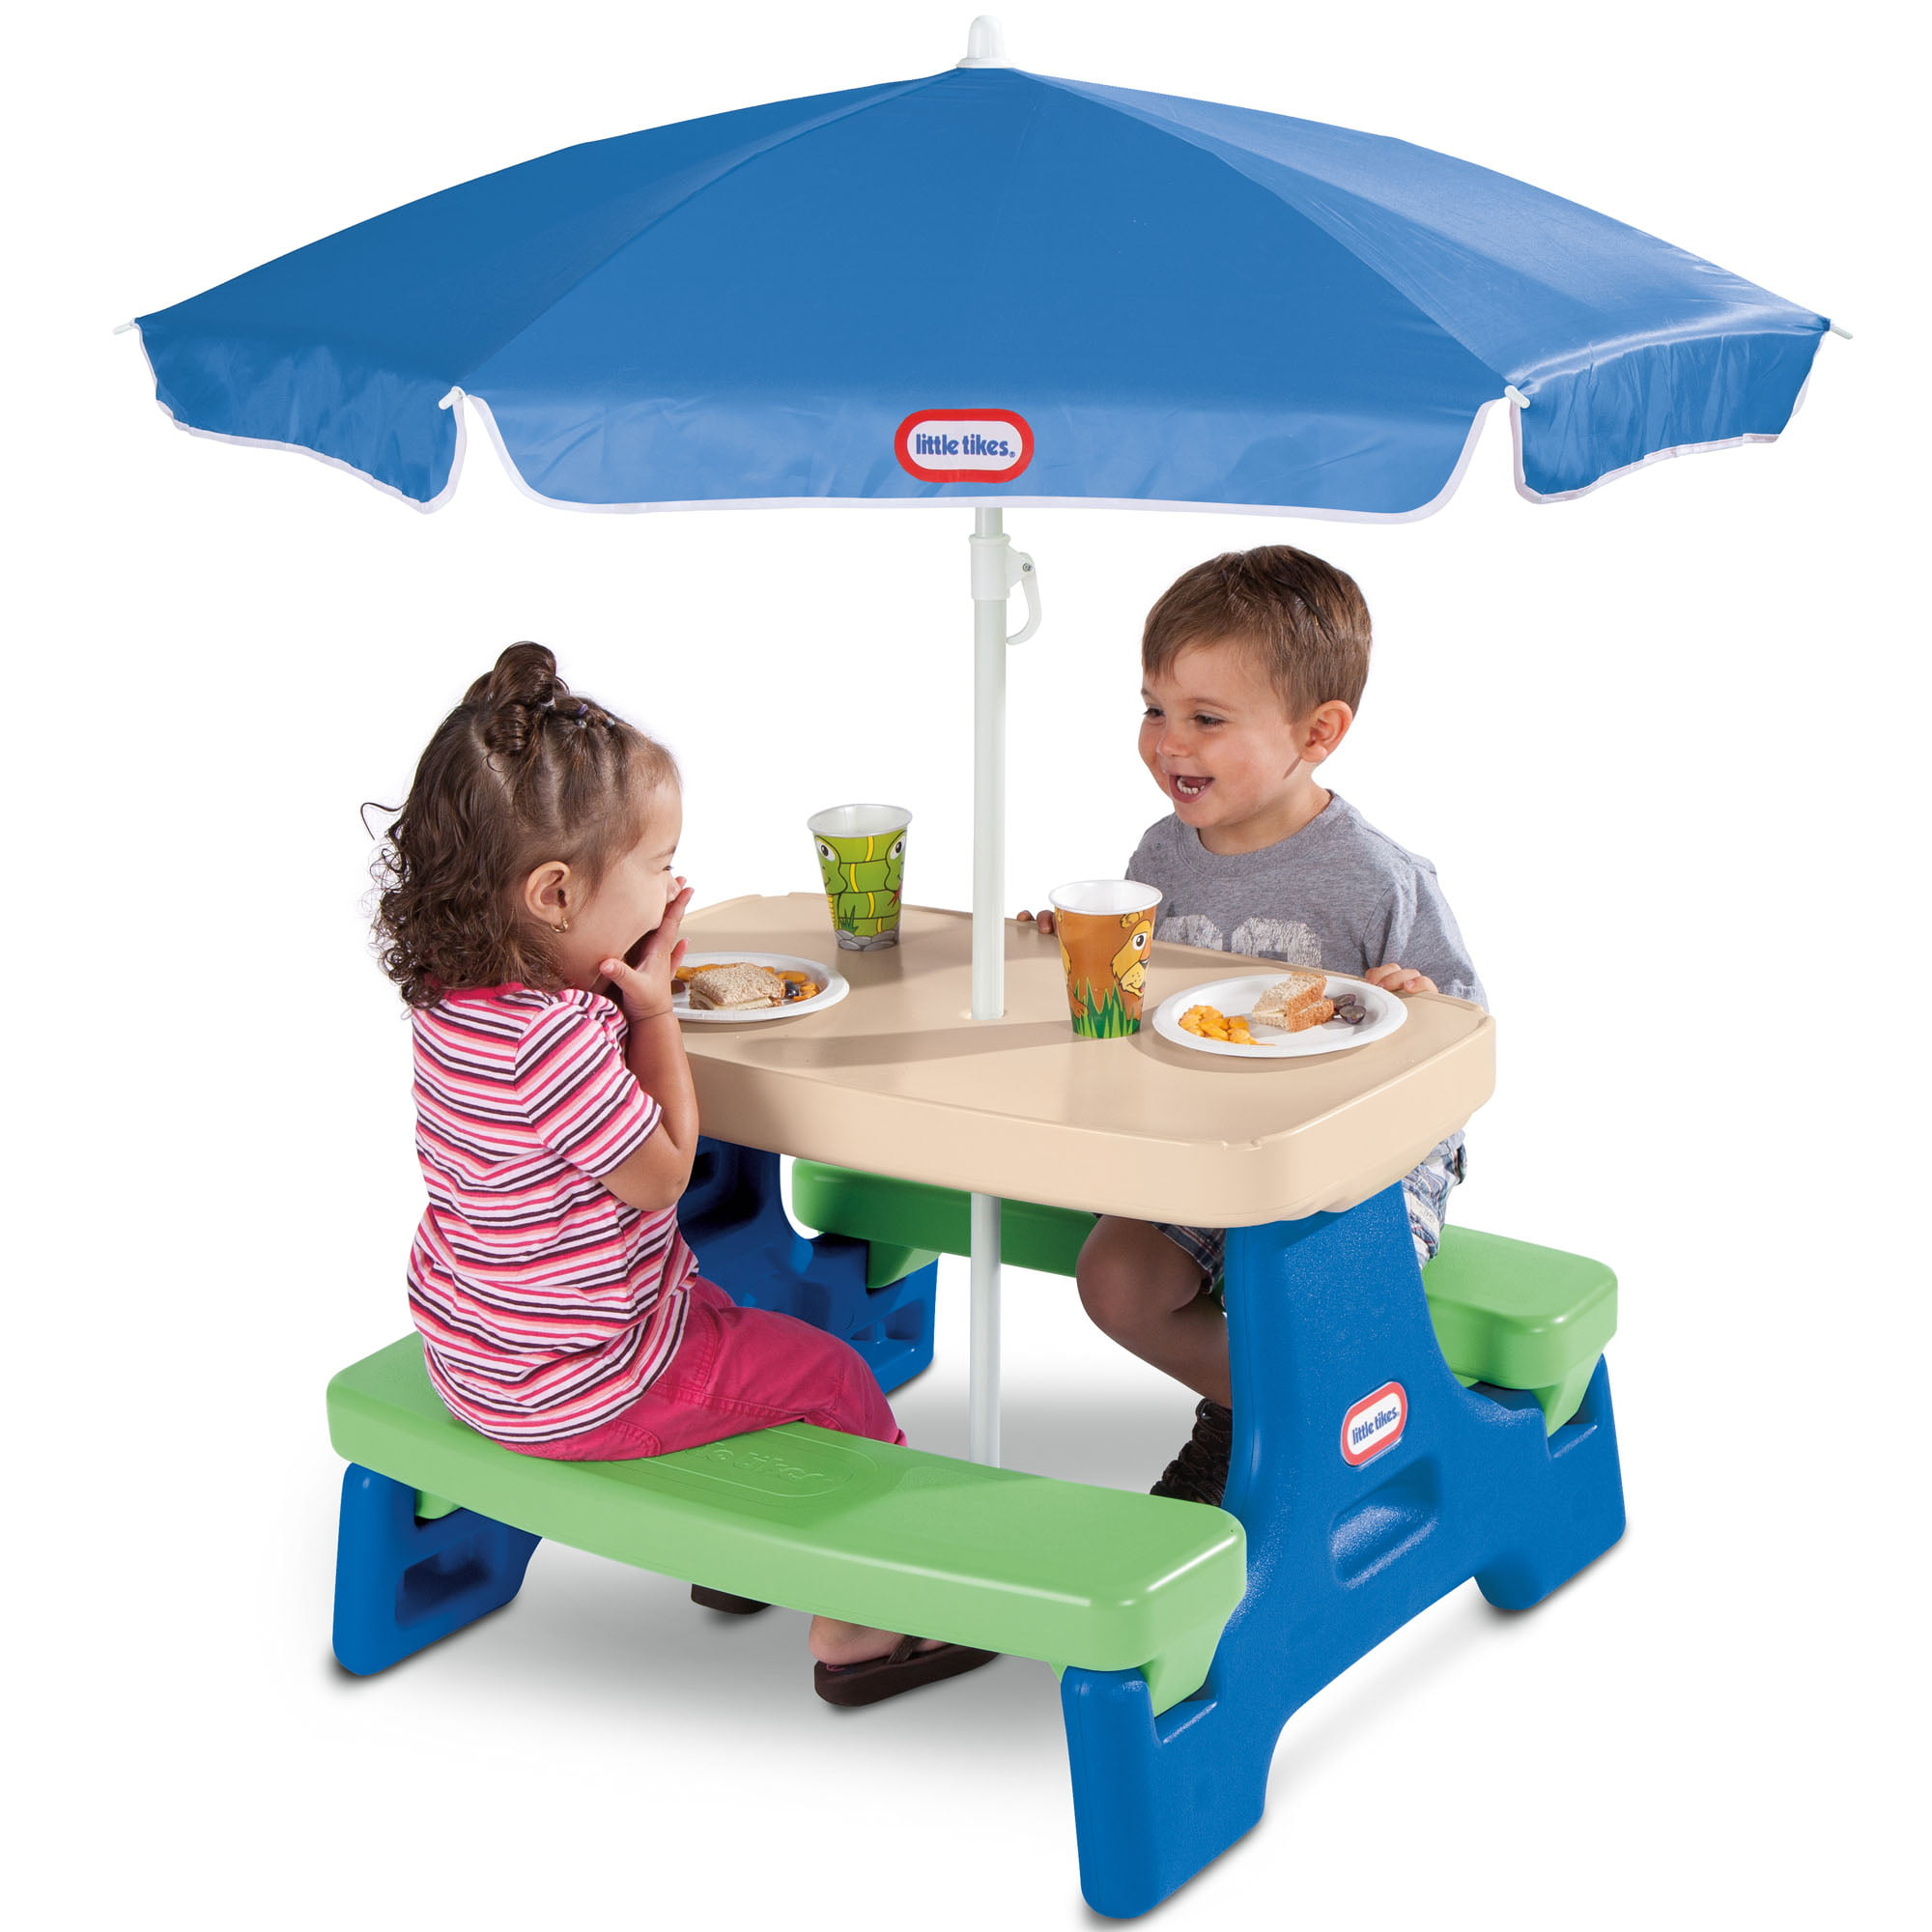 Little Tikes Easy Store Jr. Play Table with Umbrella by MGA Entertainment